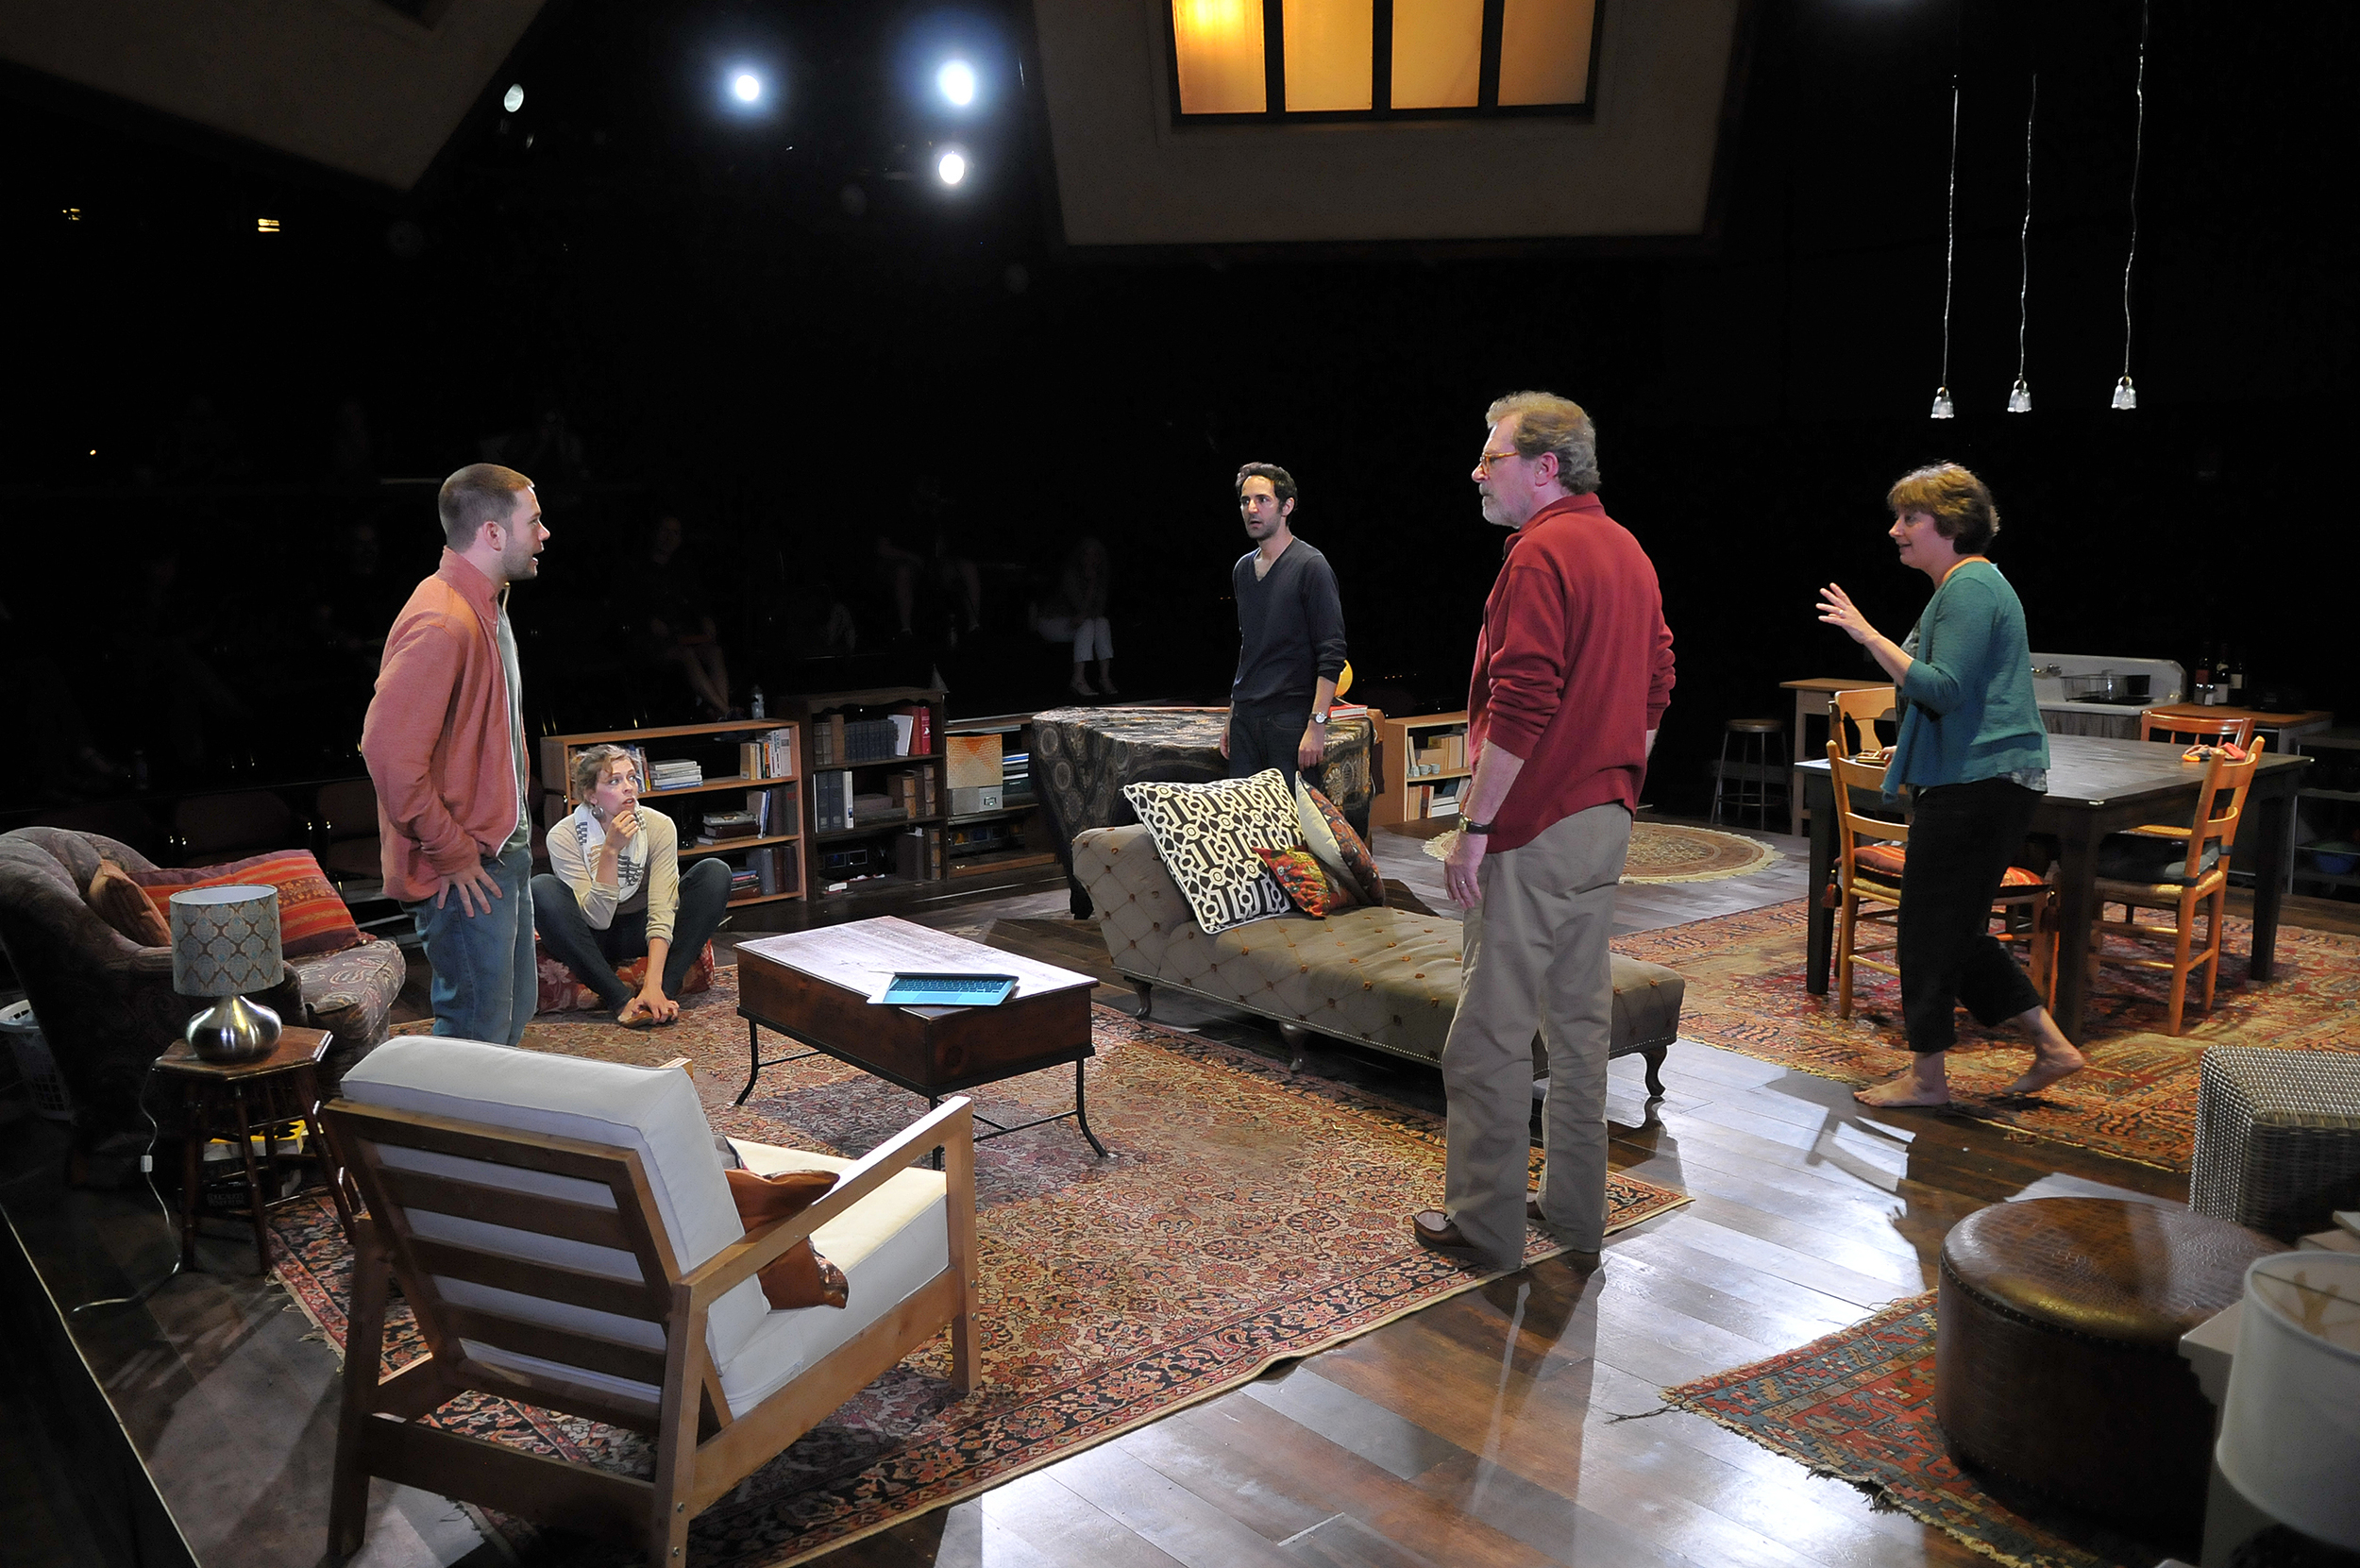 James Caverly, Kathryn Miles, Erica Spyres, Patrick Shea, Adrianne Krstansky, and Nael Nacer in the SpeakEasy Stage Company production of TRIBES directed by M. Bevin O'Gara. Photo: Craig Bailey